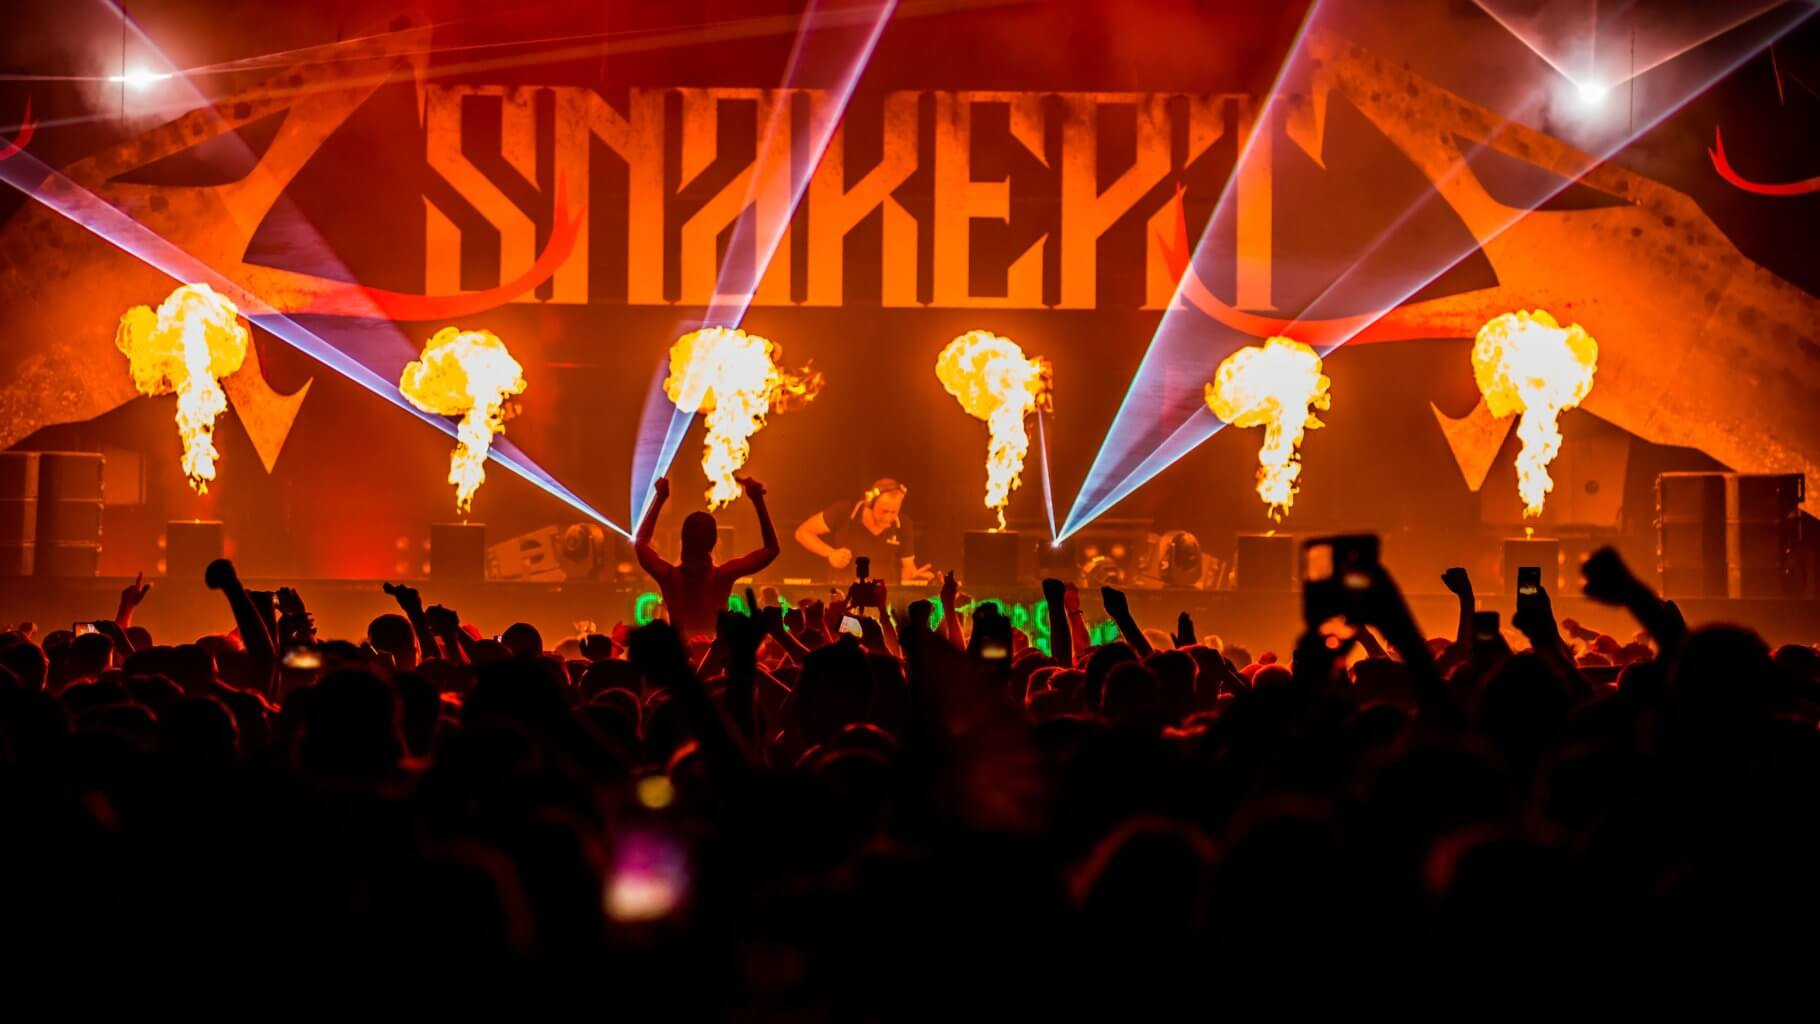 Tickets for Snakepit 2019 are now available!